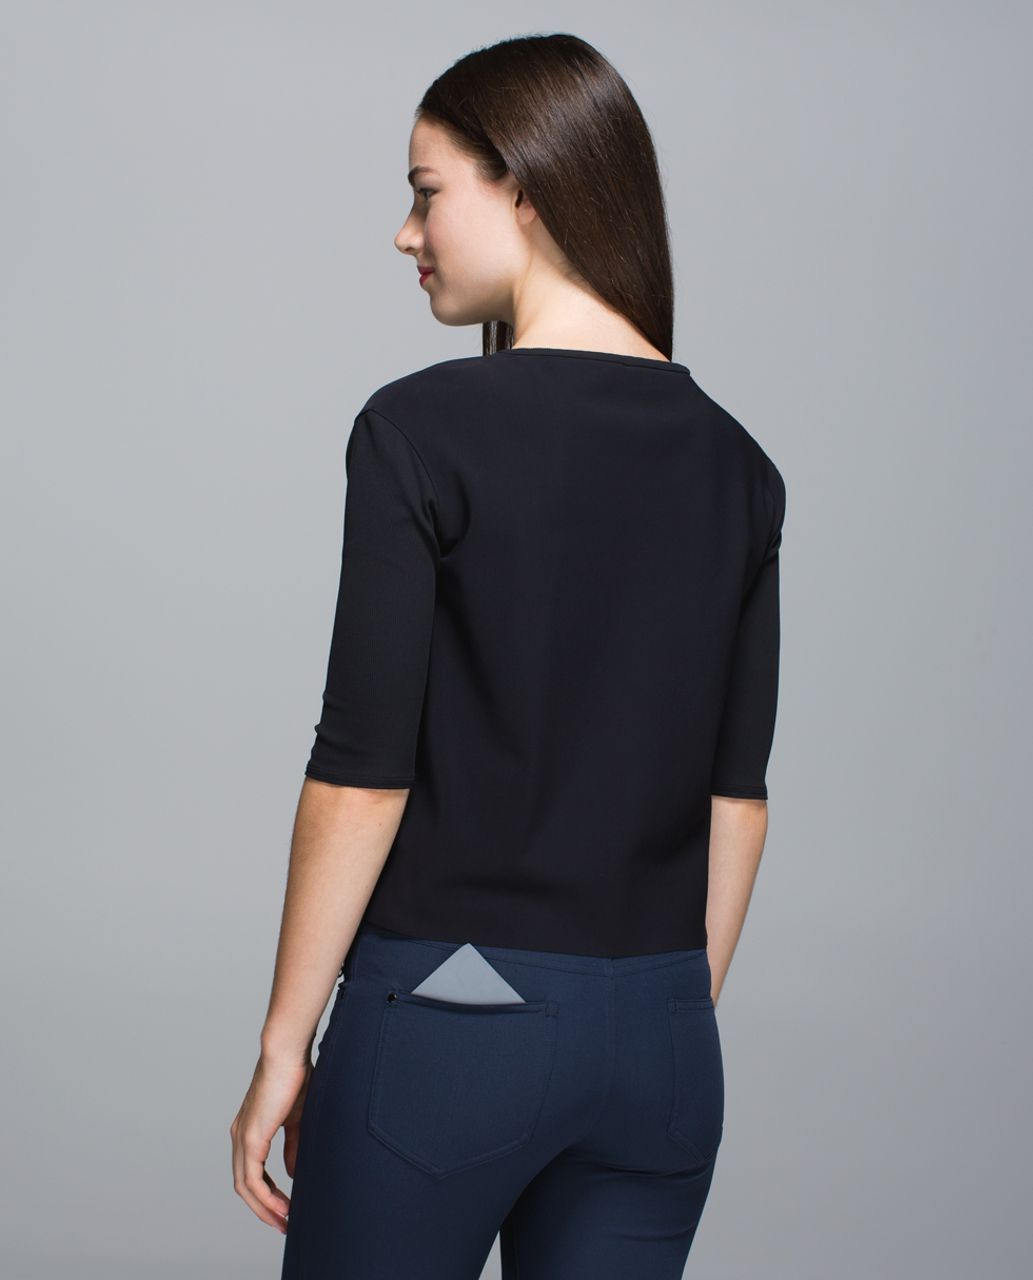 Lululemon Out Of This World Tee - Black